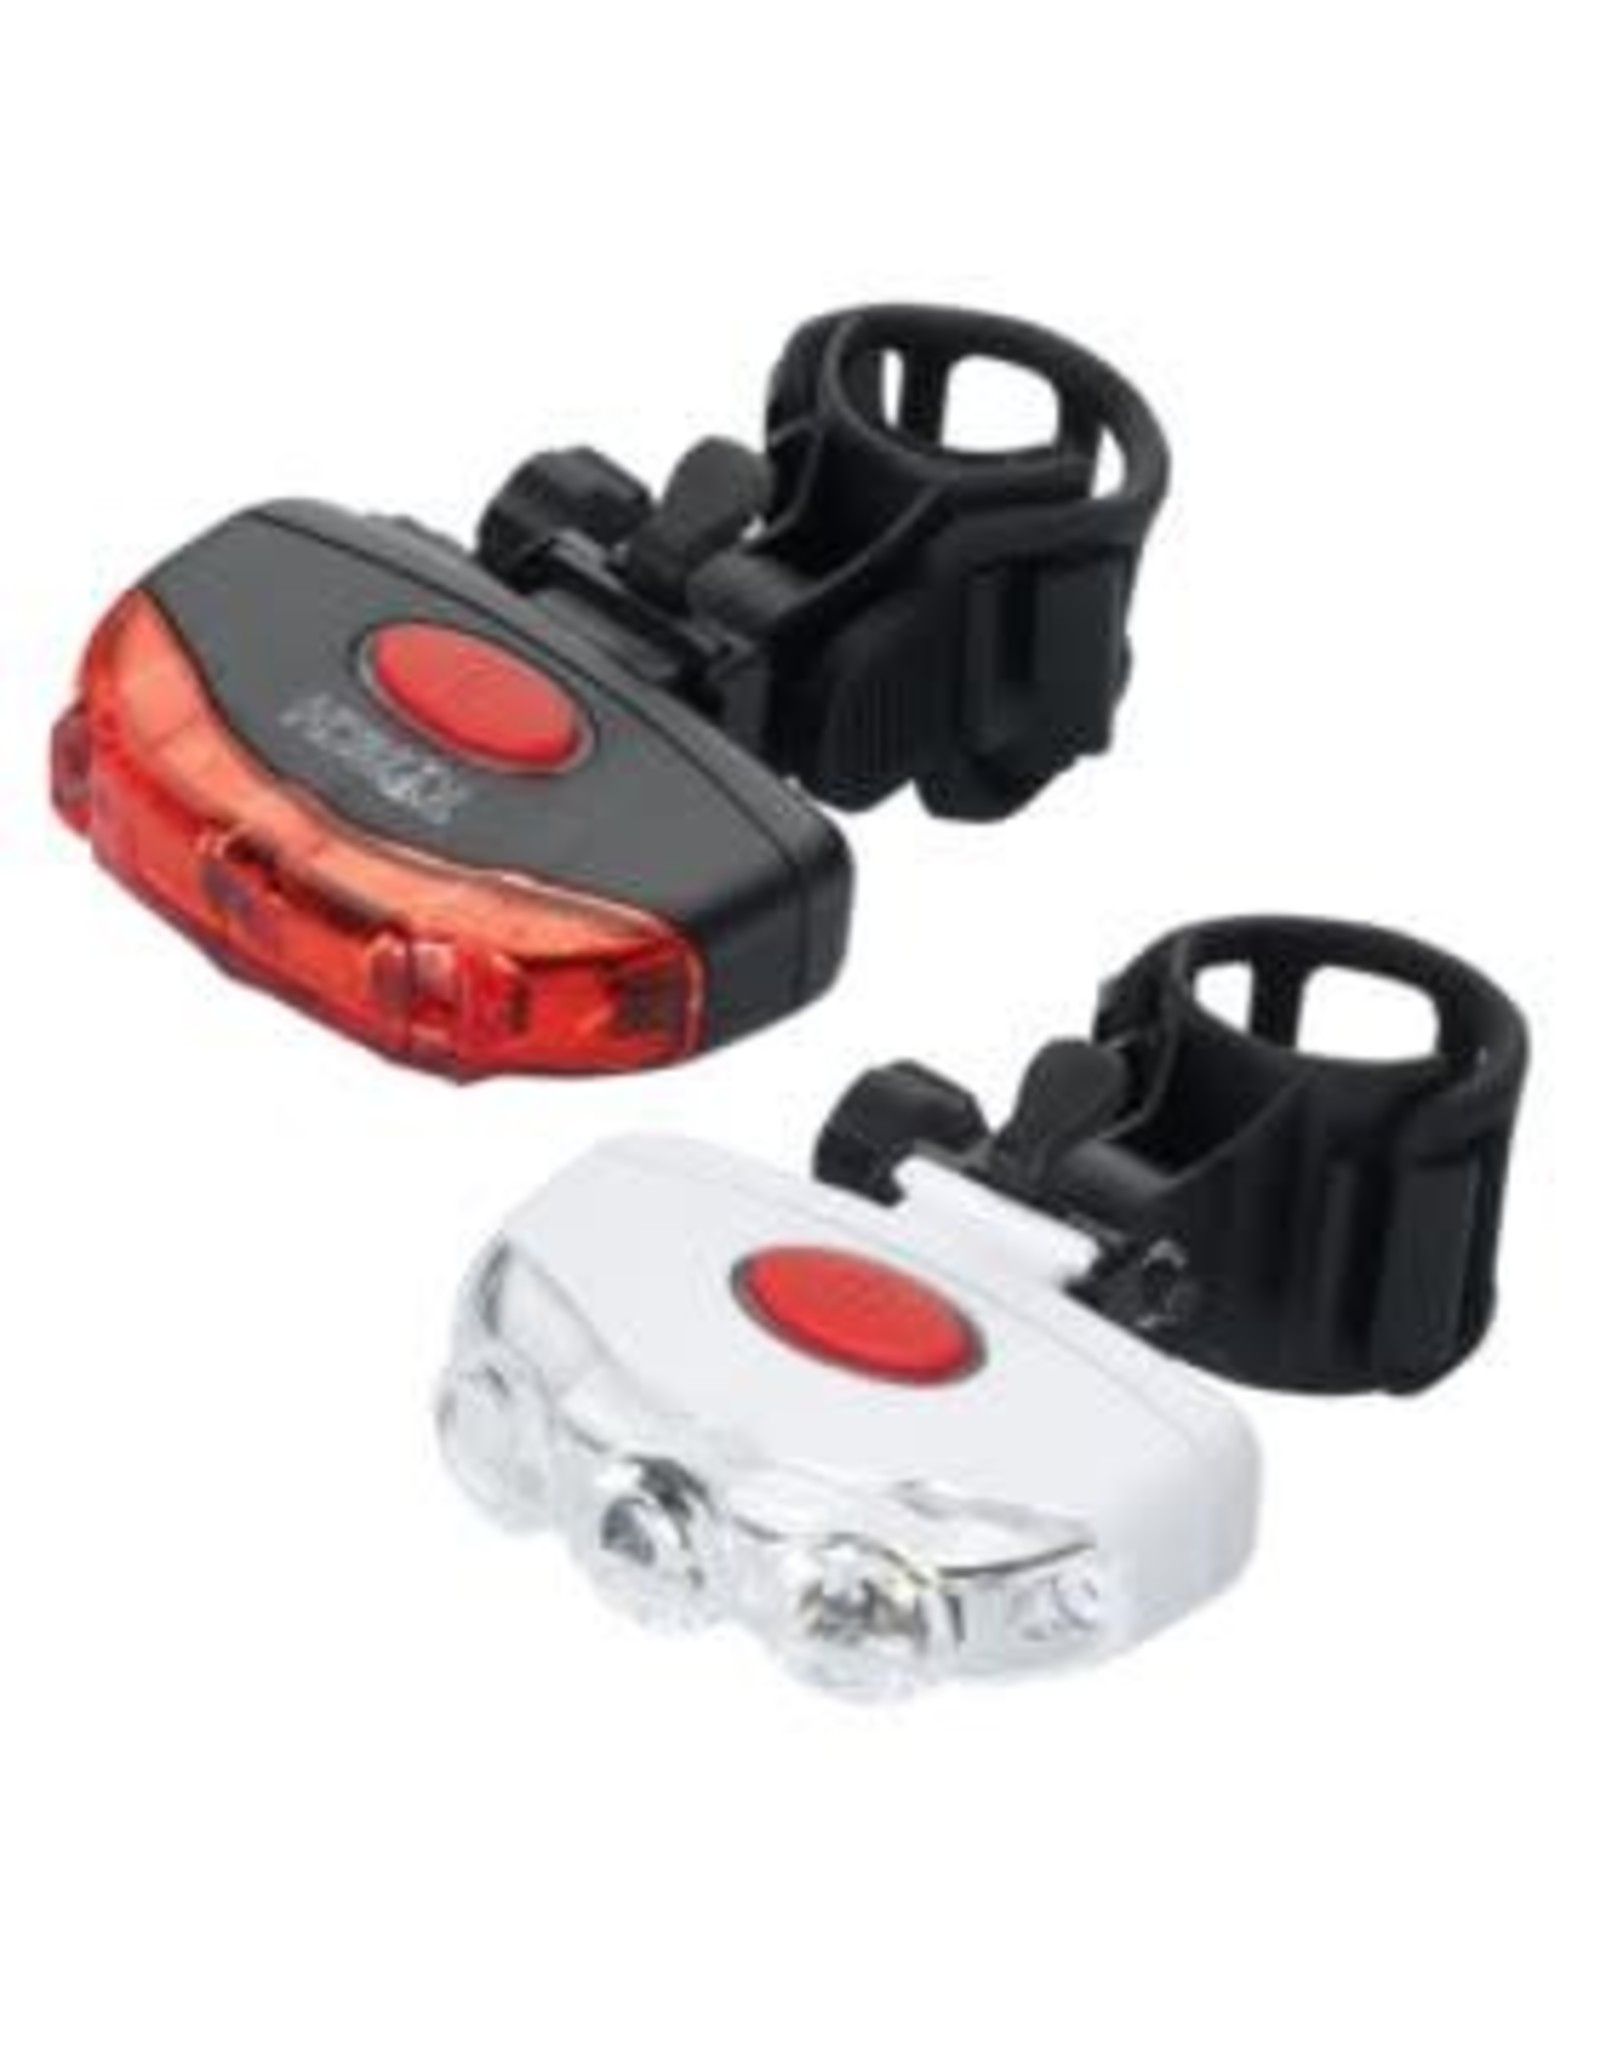 Torch CYCLE LIGHT SET BRIGHT USB